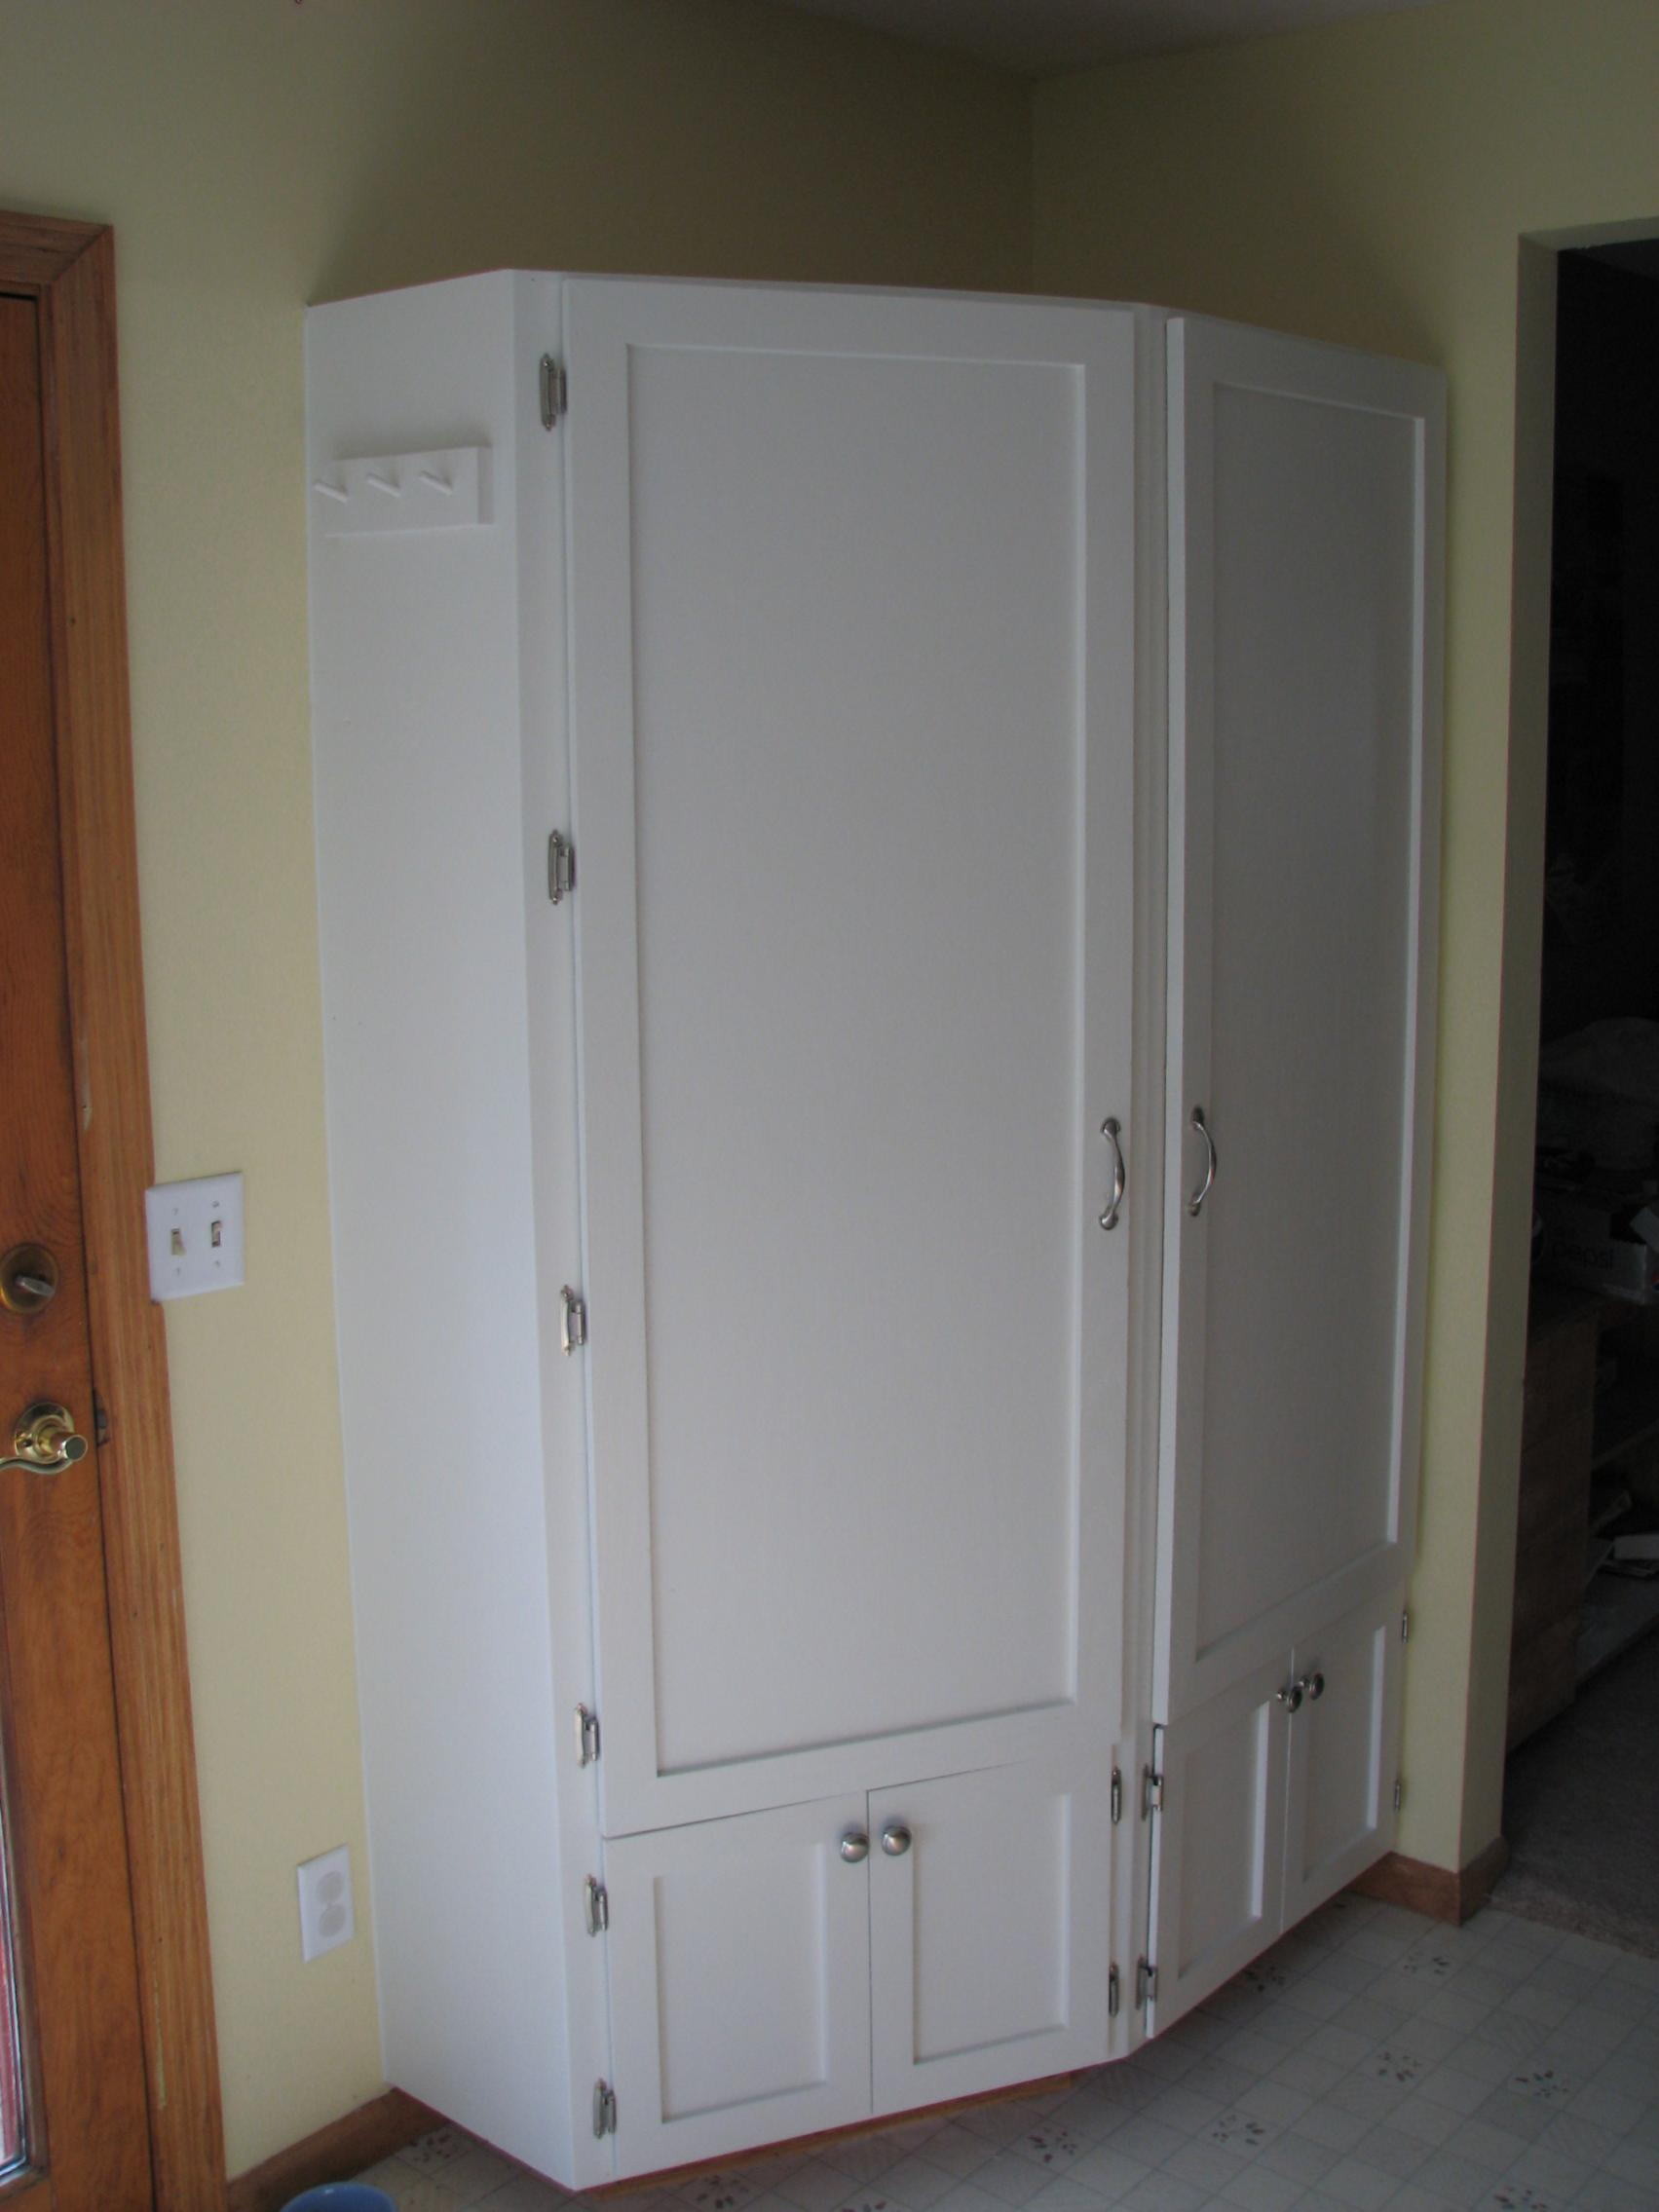 Need an airless paint sprayer for cabinets-005.jpg